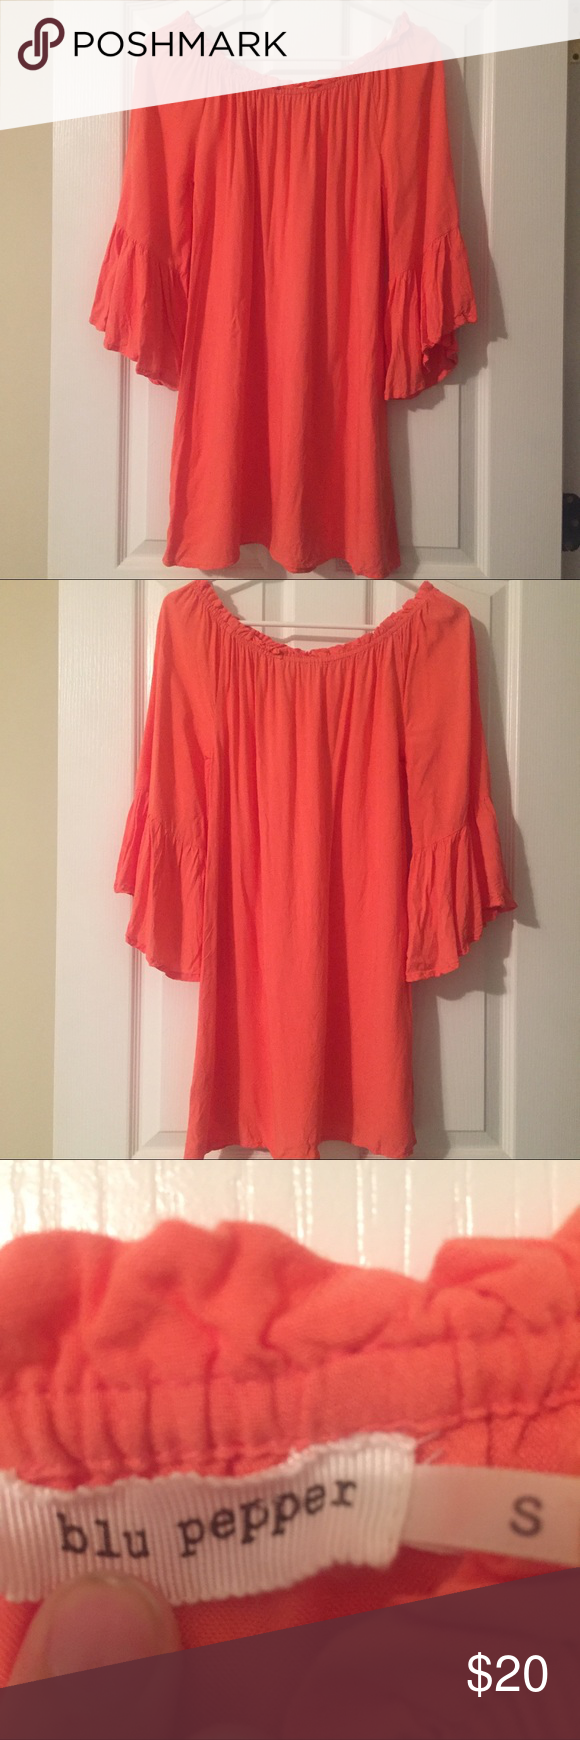 Off the shoulder summer dress Blu Pepper, gently used, size small, off the shoulder dress! Beautiful color, perfect for any occasion! Blu Pepper Dresses Strapless